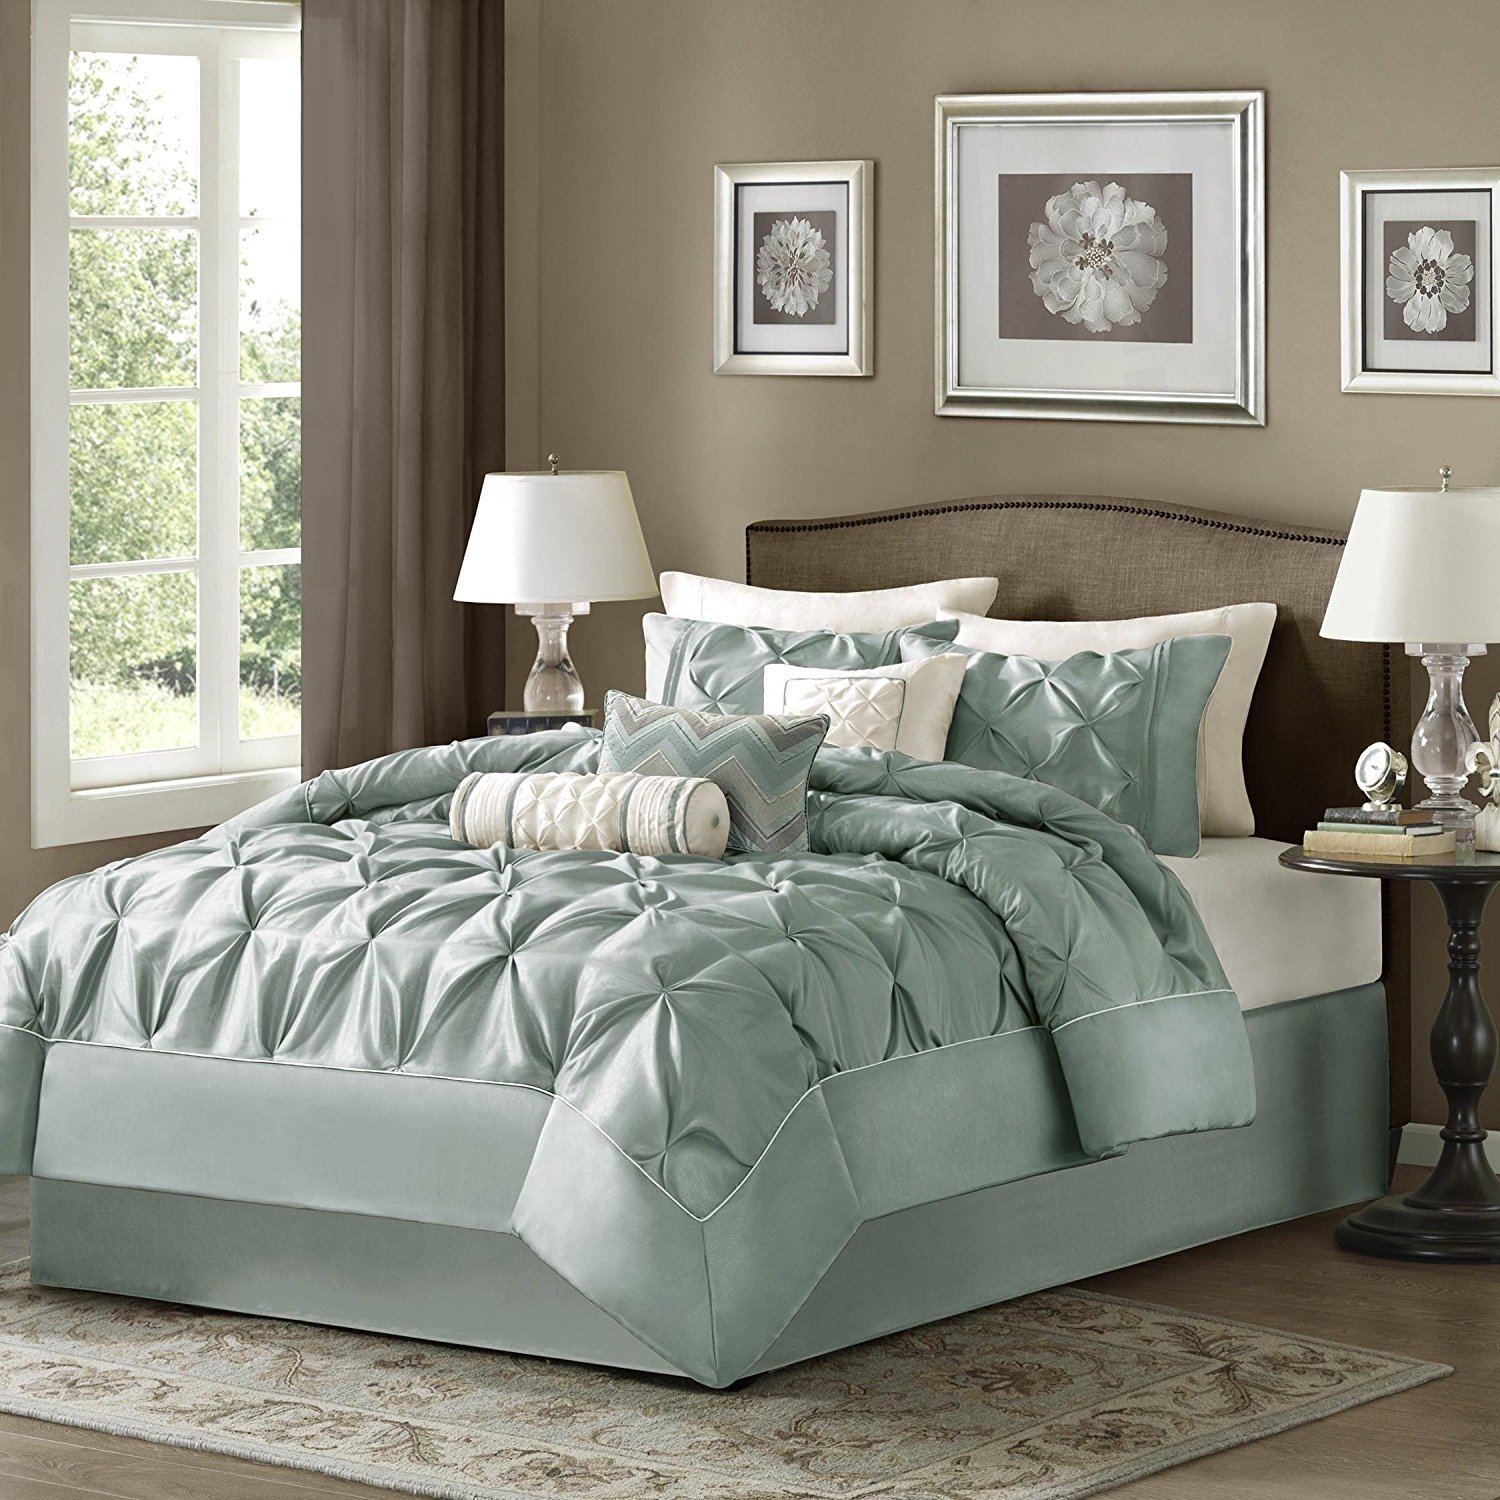 hot sale 2017 OSD 7pc Seafoam Green Blue Pinch Pleated Comforter Queen Set, Plush Pinched Pleat Bedding, Dusty, Stylish Pin Tuck Puckered Texture, Chic Pintuck Diamond Tufted Texture Themed